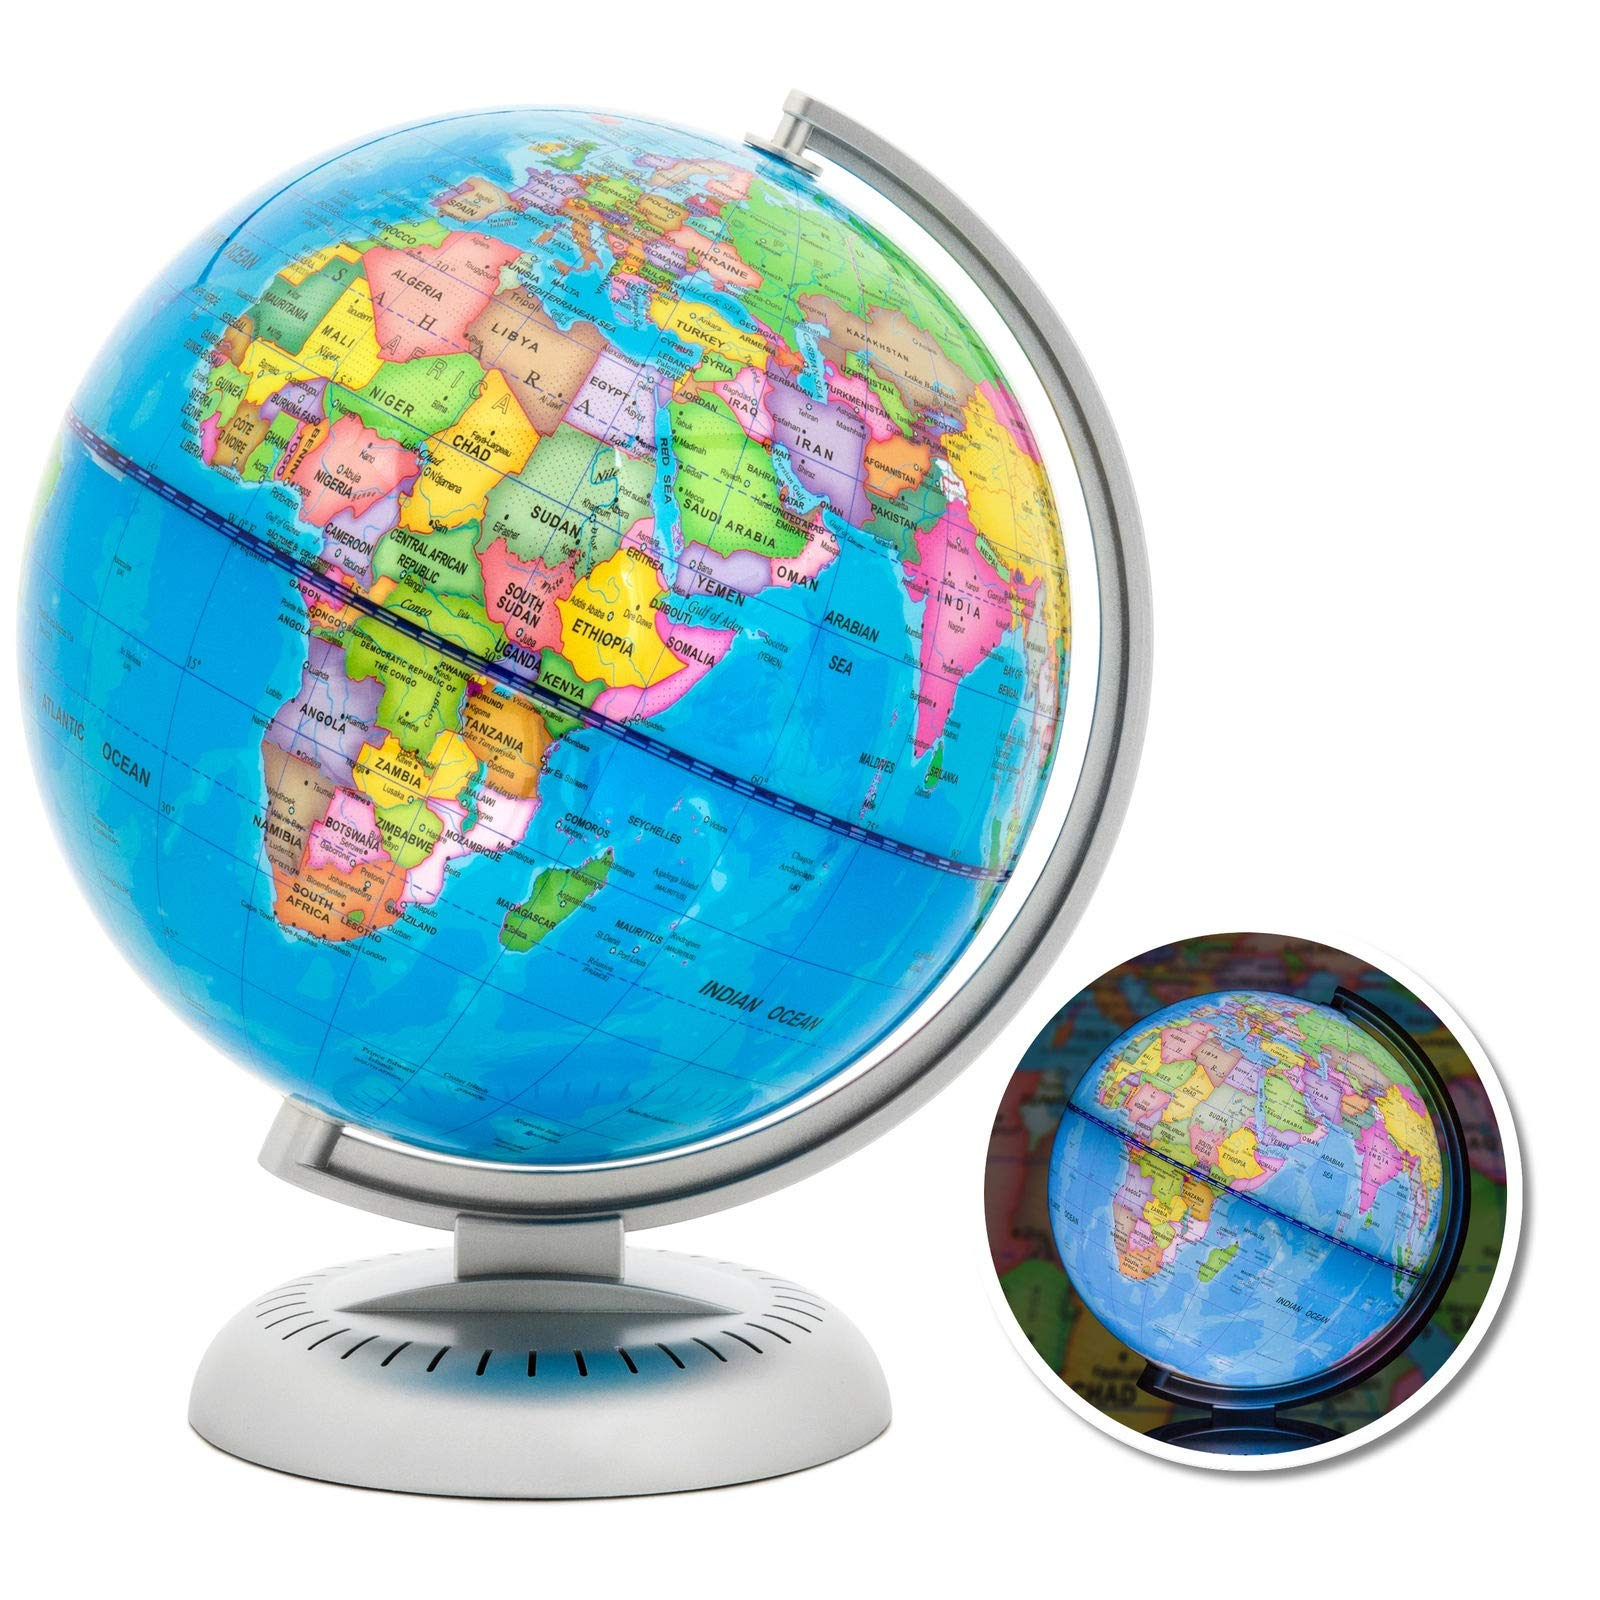 Illuminated World Globe - Multicolor With LED Lights (8 inch) by Blossom Store (Image #4)